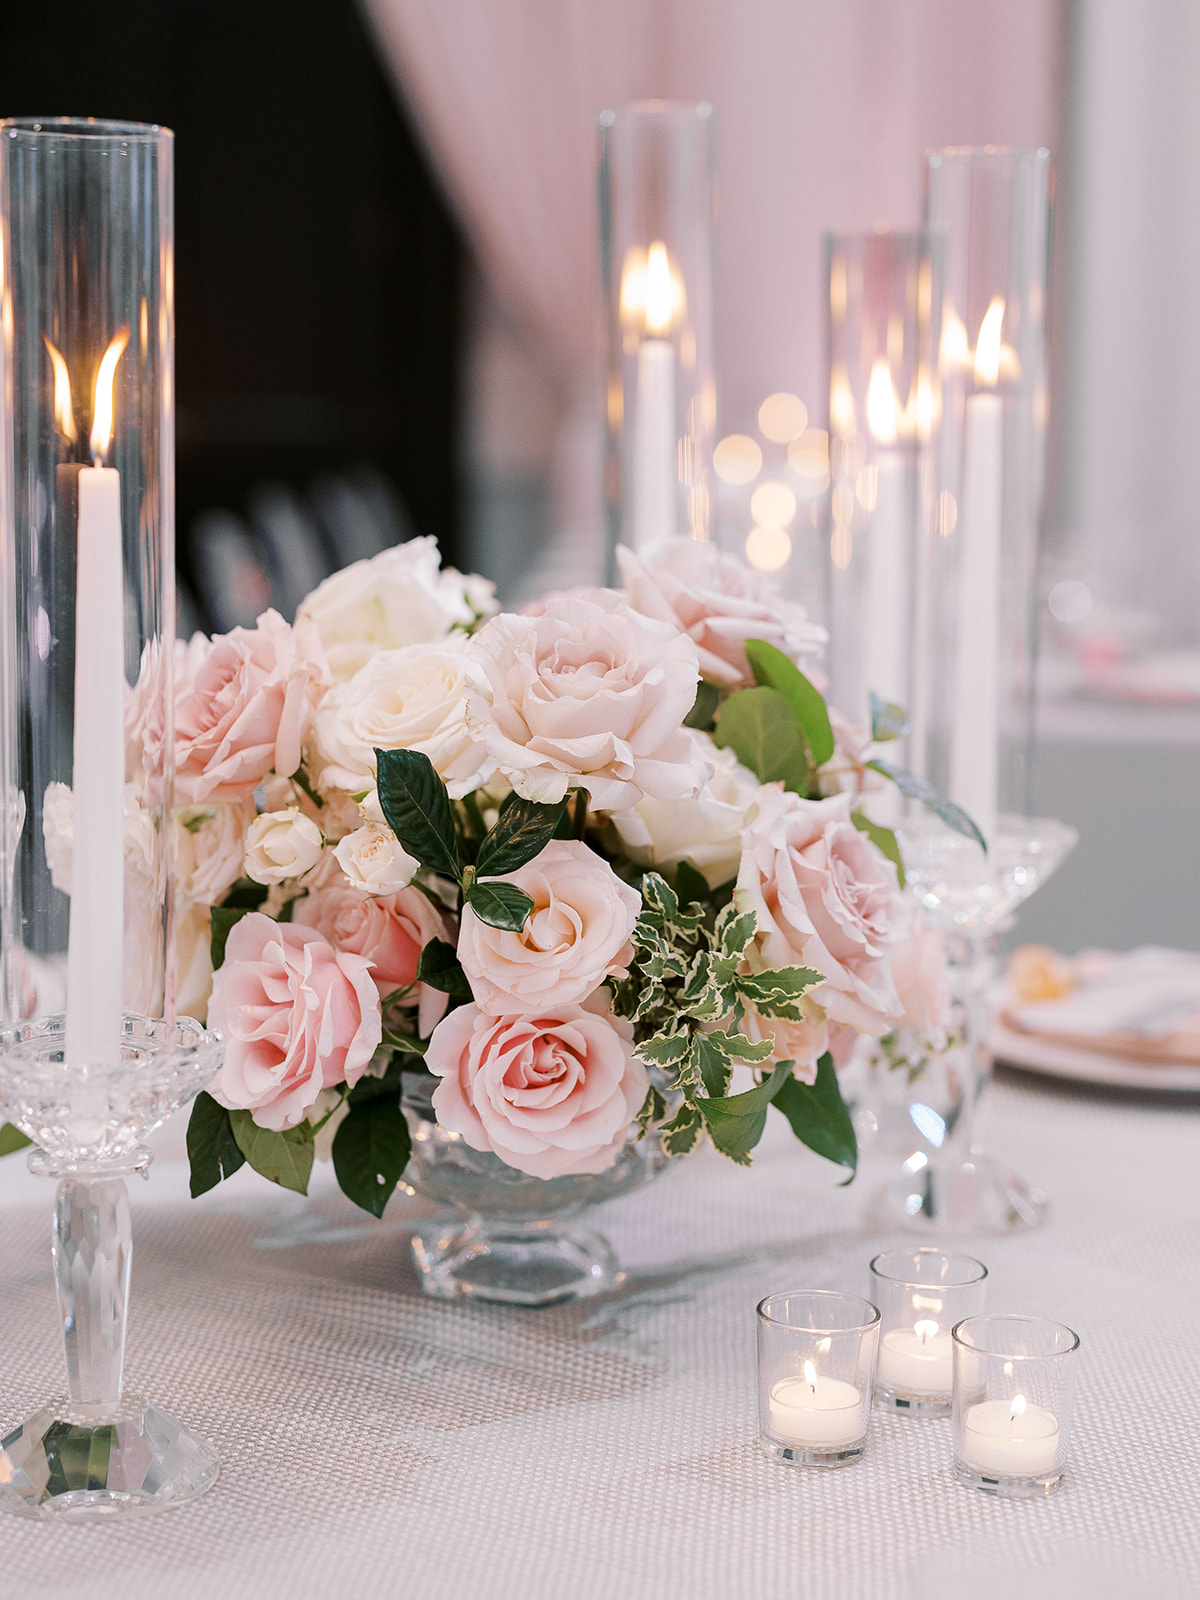 white and pink rose centerpieces at wedding